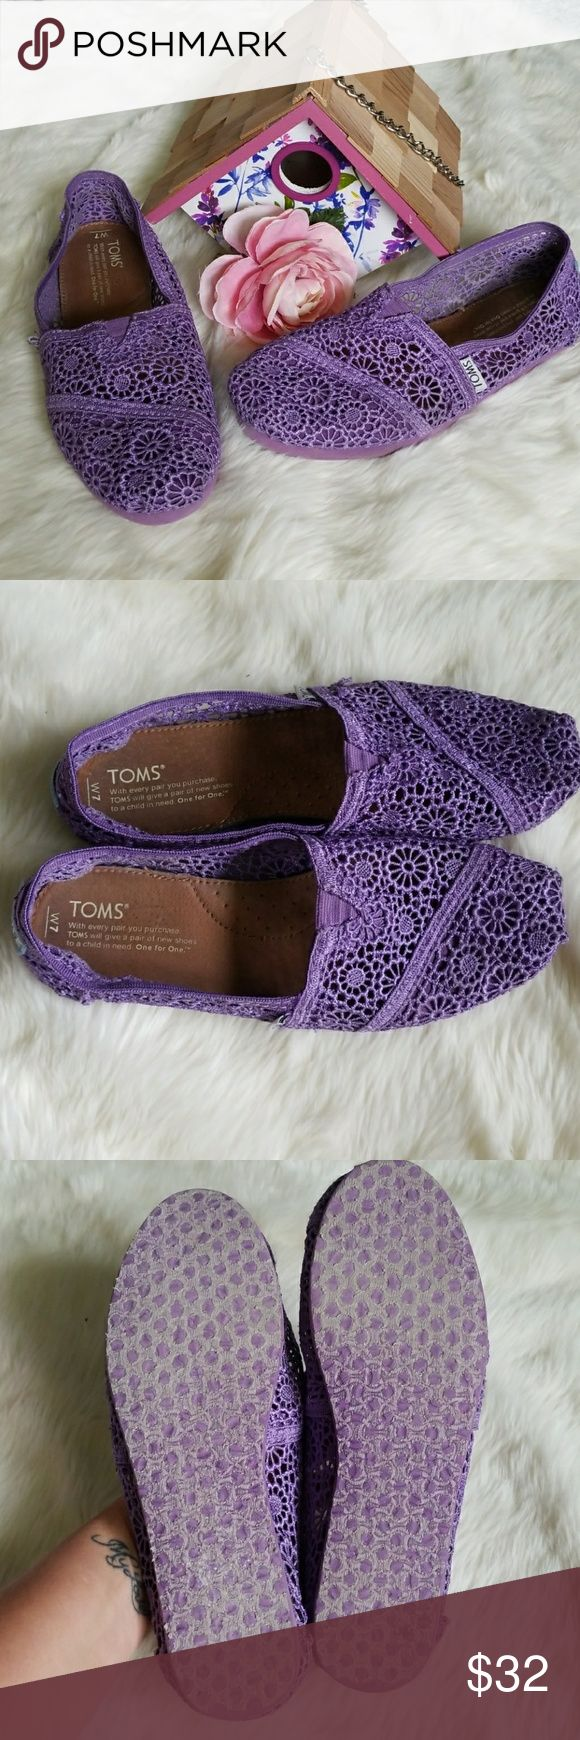 ⚠️Lowball Offer Sale⚠️Purple Crochet Toms Absolutely adorable purple crochet Toms.  Size 7 Women's.  Material is slightly frayed on small section of left shoe as shown in pic 4, otherwise excellent condition! TOMS Shoes Flats & Loafers